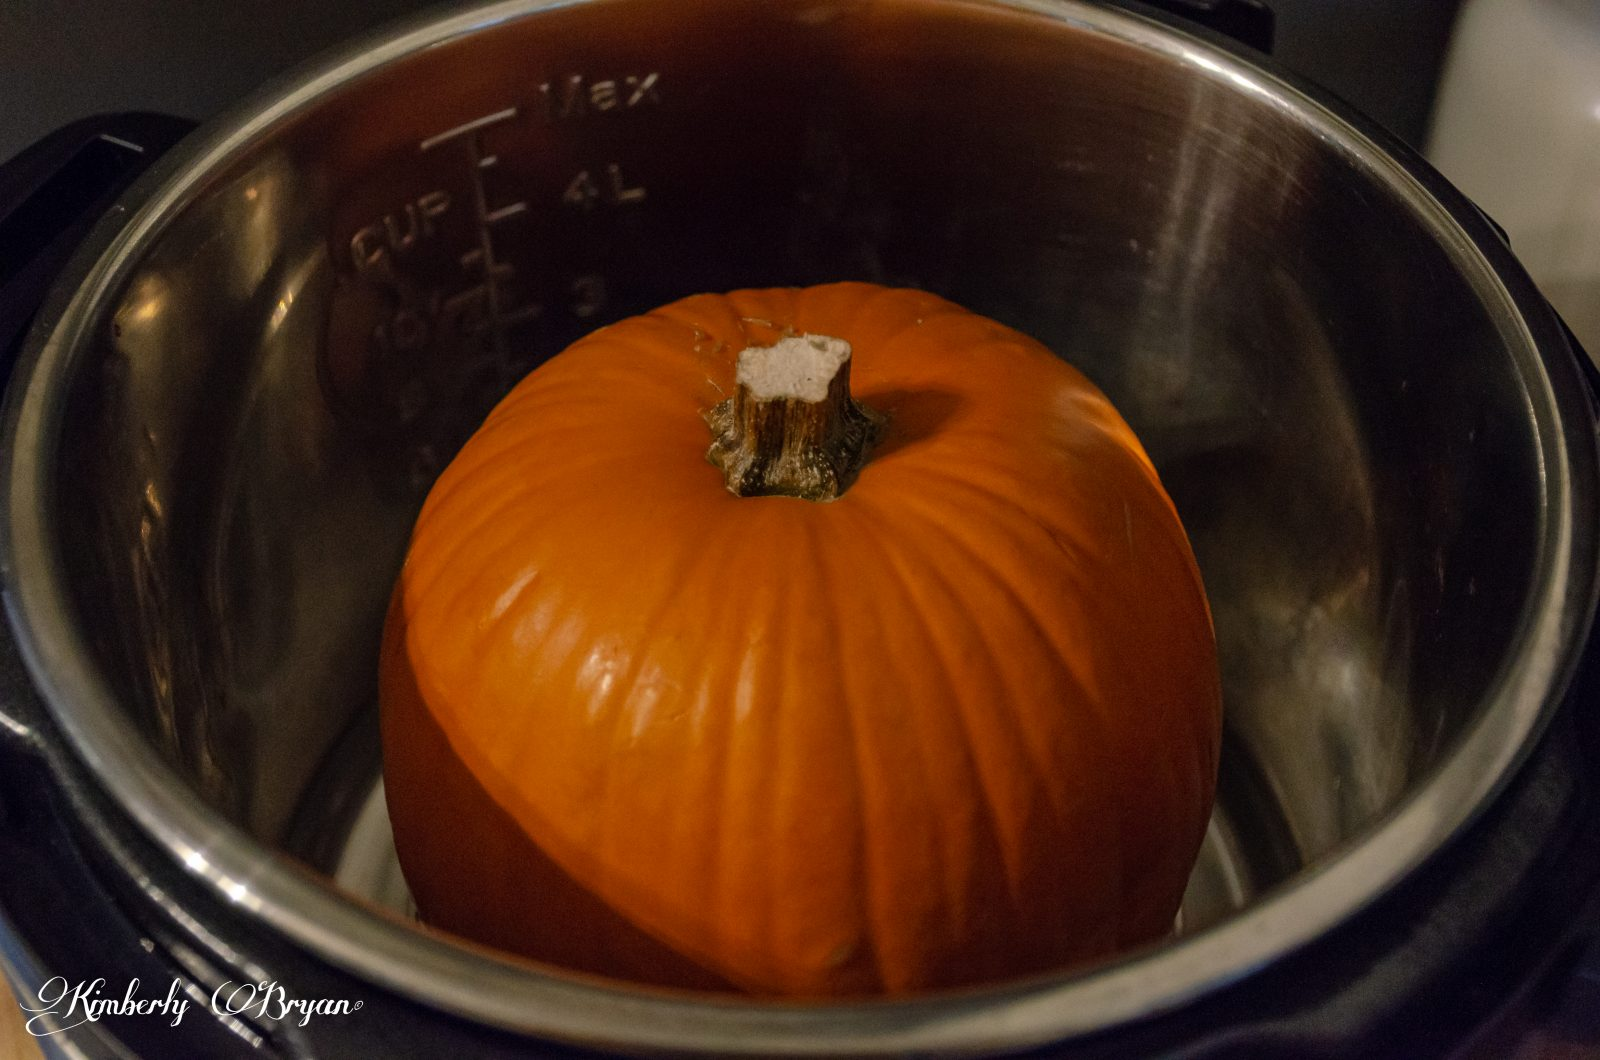 Sugar Pumpkin sitting on a rack in the Instant Pot.